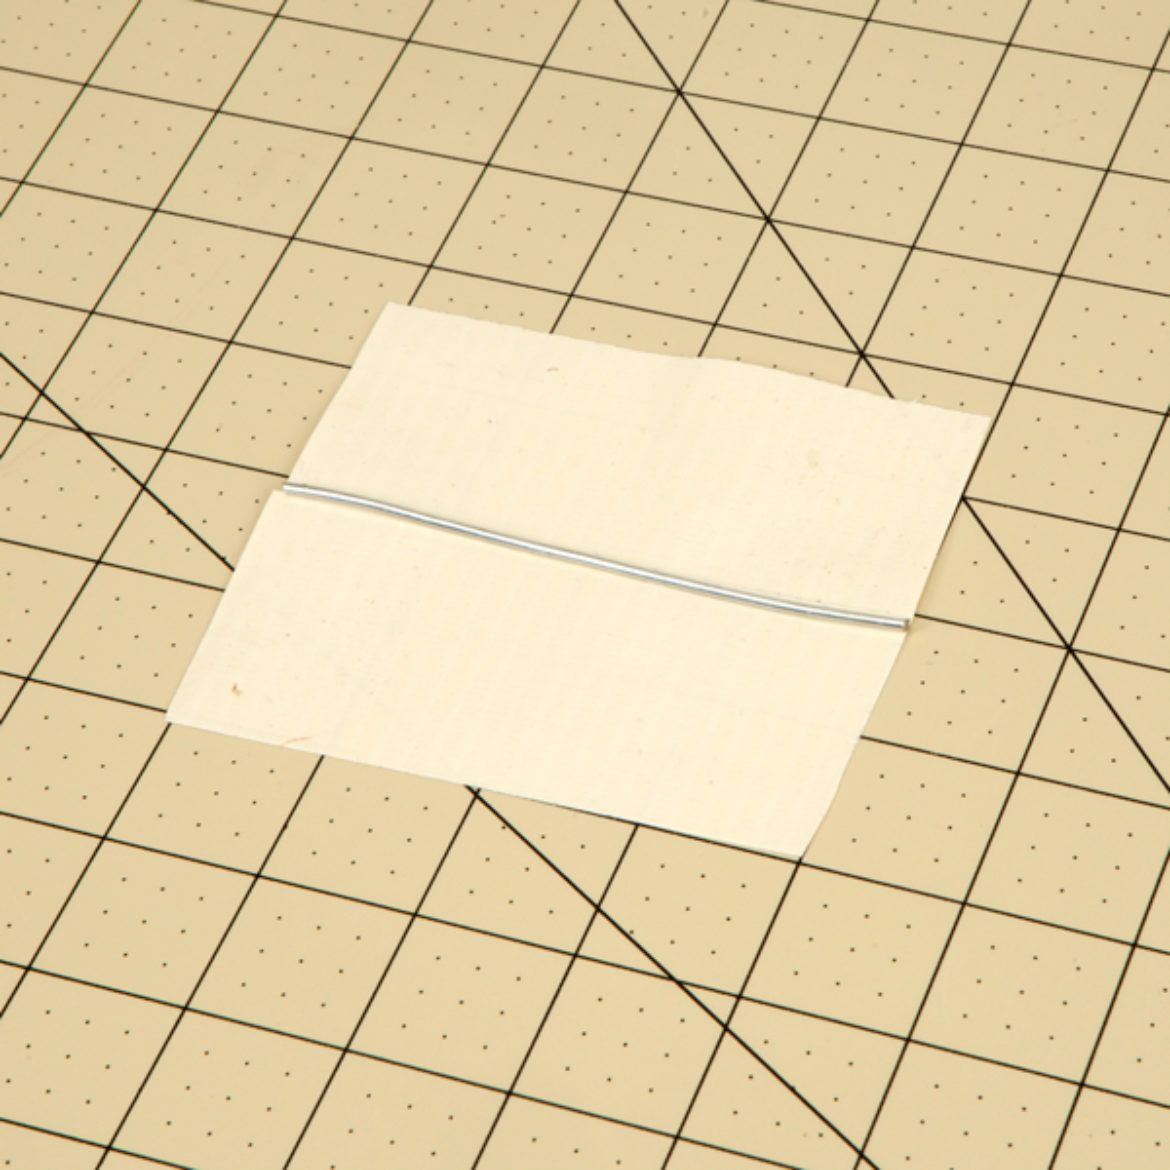 Piece of wire the exact length of the square made in the previous step laid across the center of the square